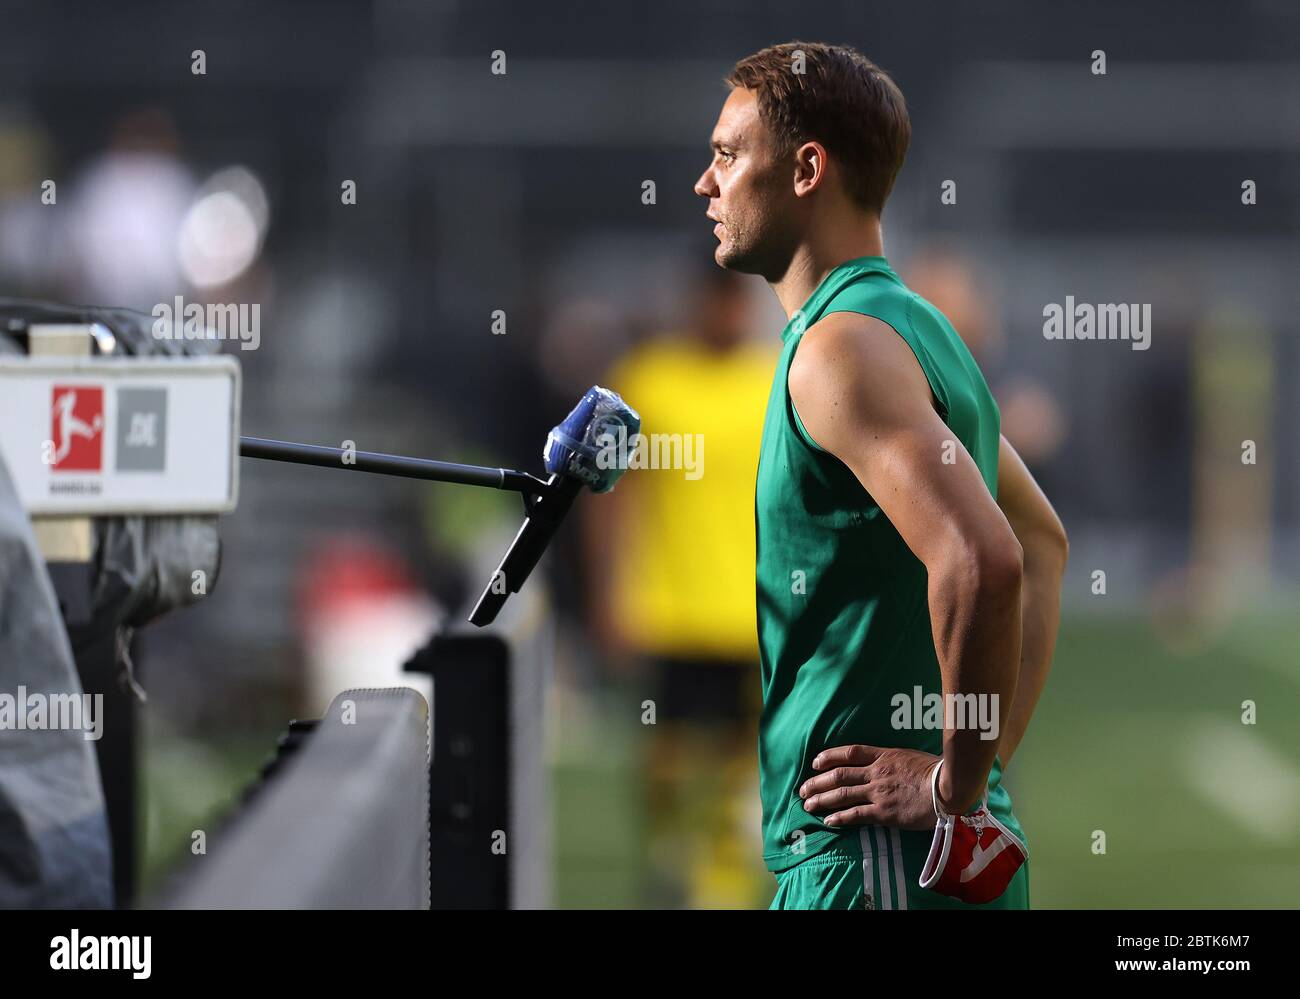 Dortmund, Germany, 26th May 2020  fcb1 TV interview ARD german television in the football match  BORUSSIA DORTMUND - FC BAYERN MUENCHEN in 1. Bundesliga 2019/2020, matchday 28.  © Peter Schatz / Alamy Live News / Pool via Jürgen Fromme / firosportfoto   - DFL REGULATIONS PROHIBIT ANY USE OF PHOTOGRAPHS as IMAGE SEQUENCES and/or QUASI-VIDEO -   National and international News-Agencies OUT  Editorial Use ONLY Stock Photo